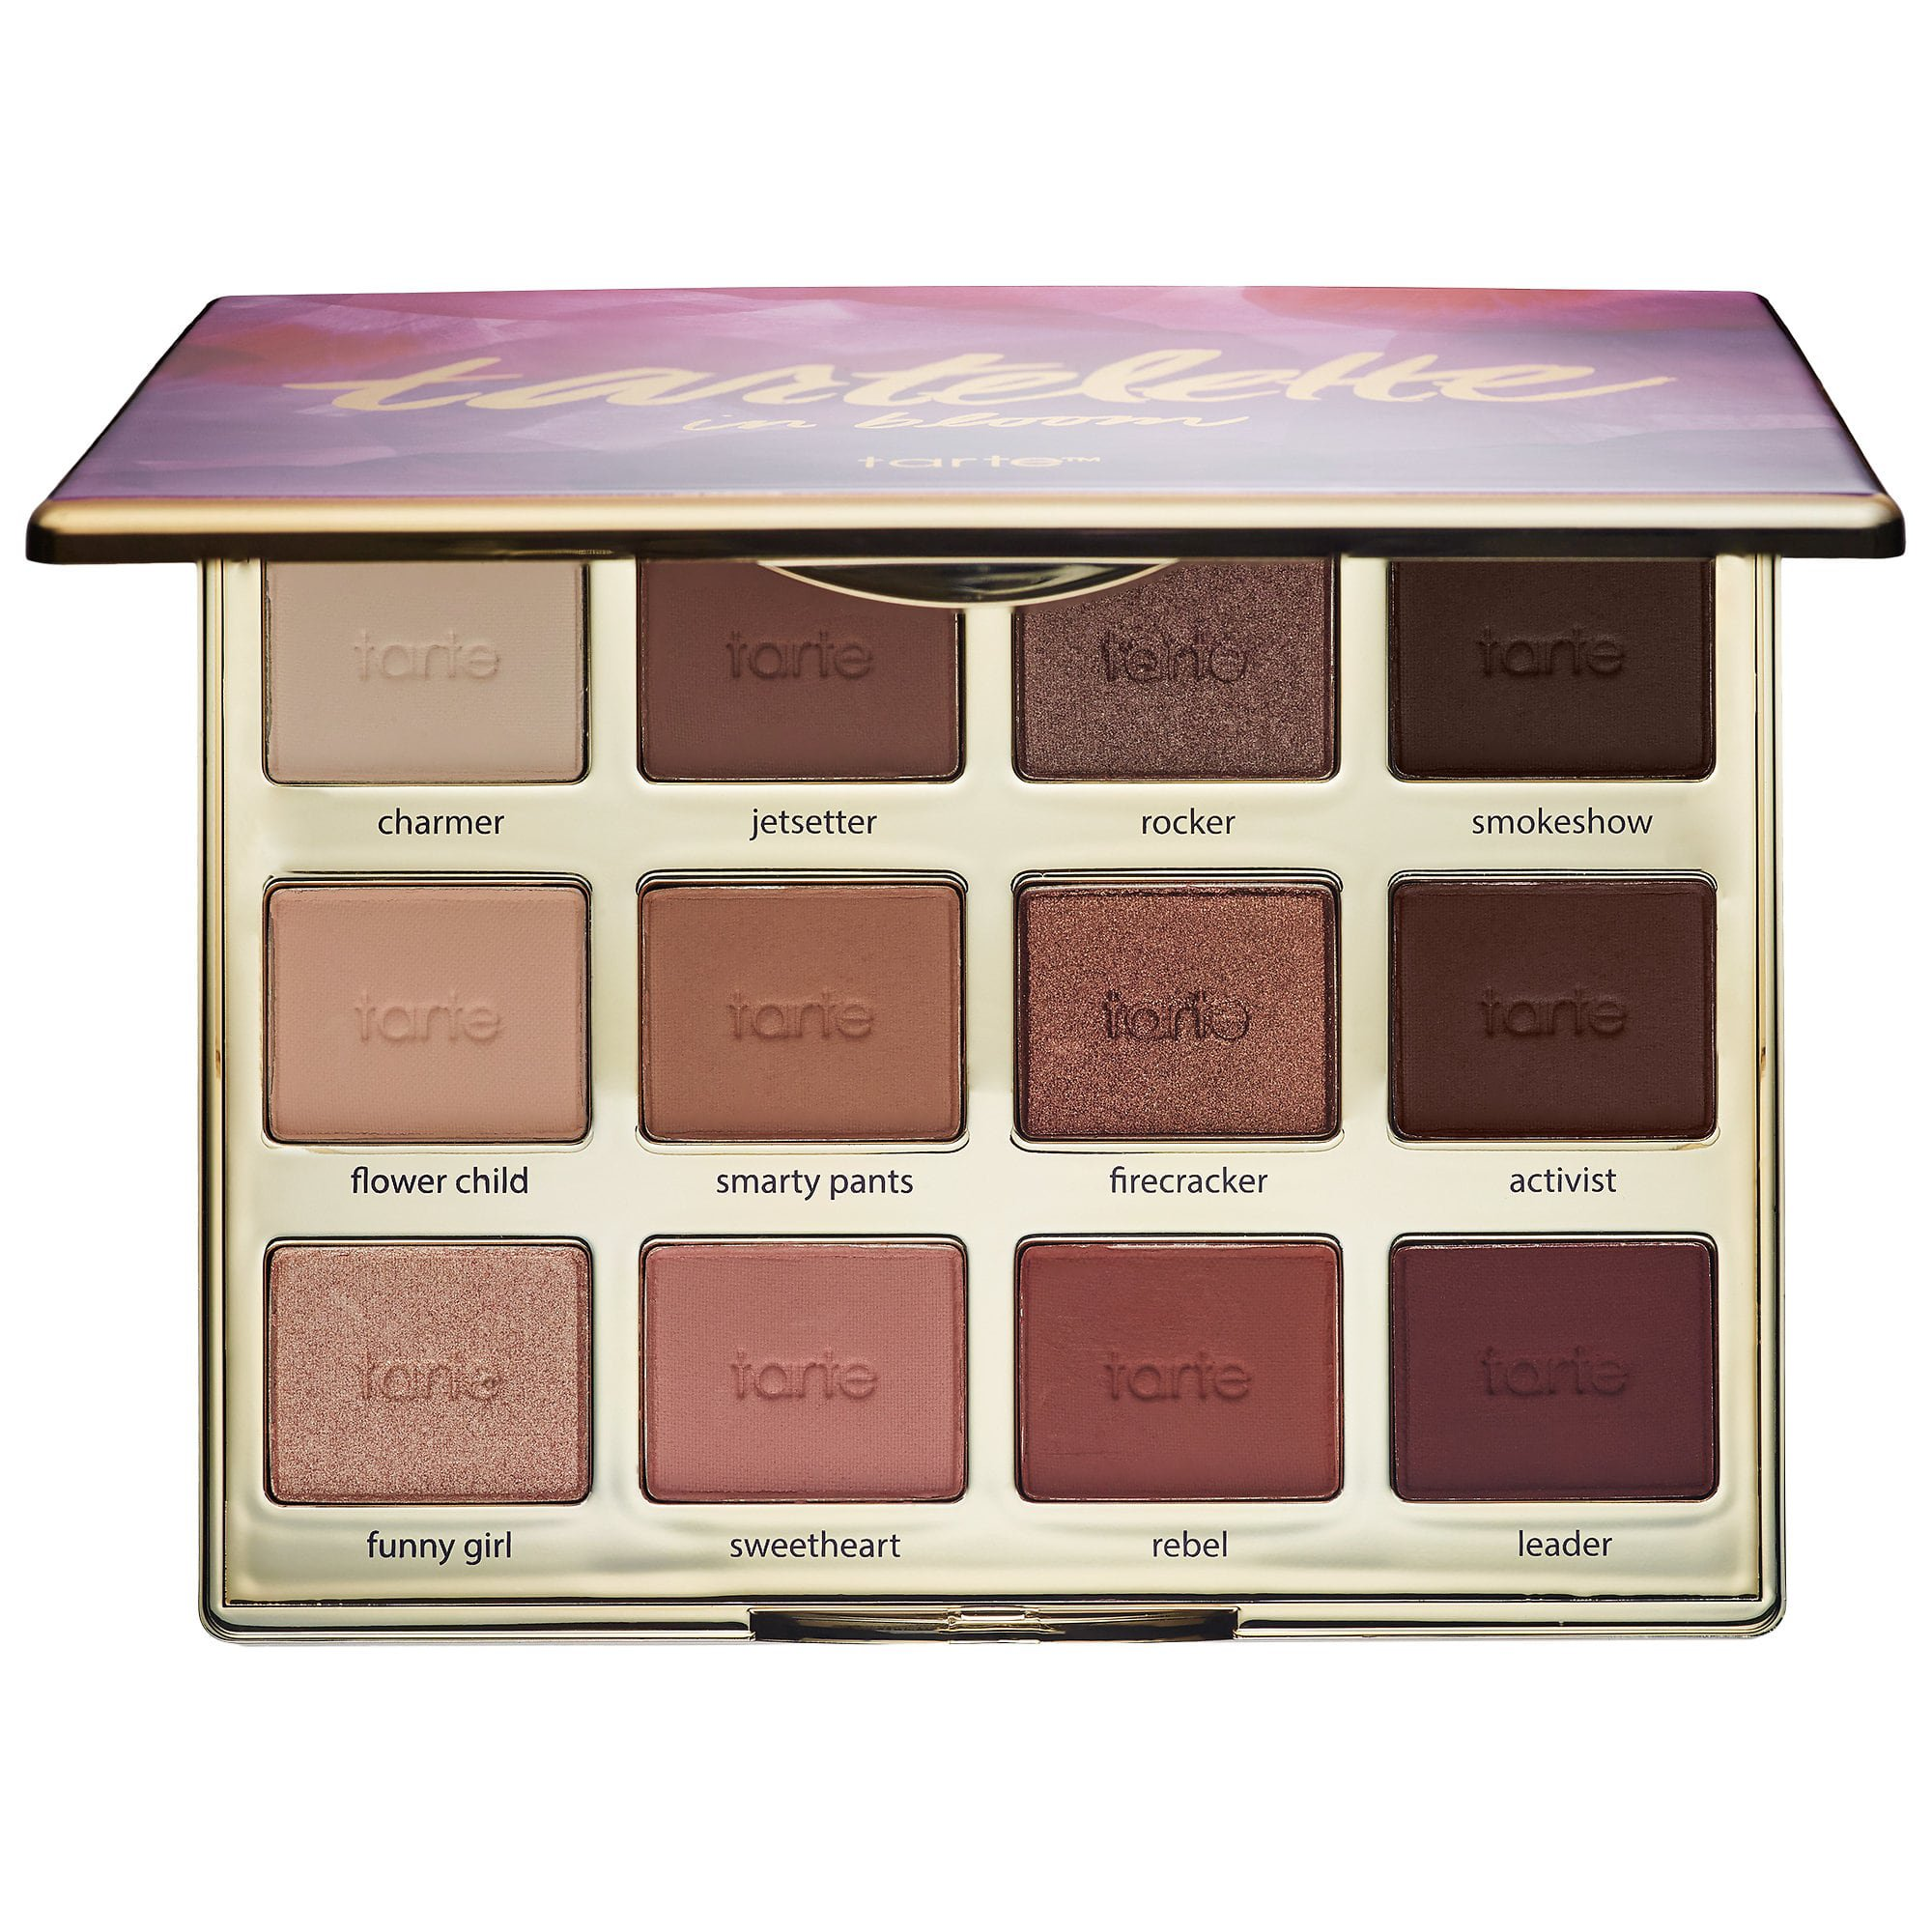 Tartelette™ In Bloom Clay Eyeshadow Palette - tarte | Sephora